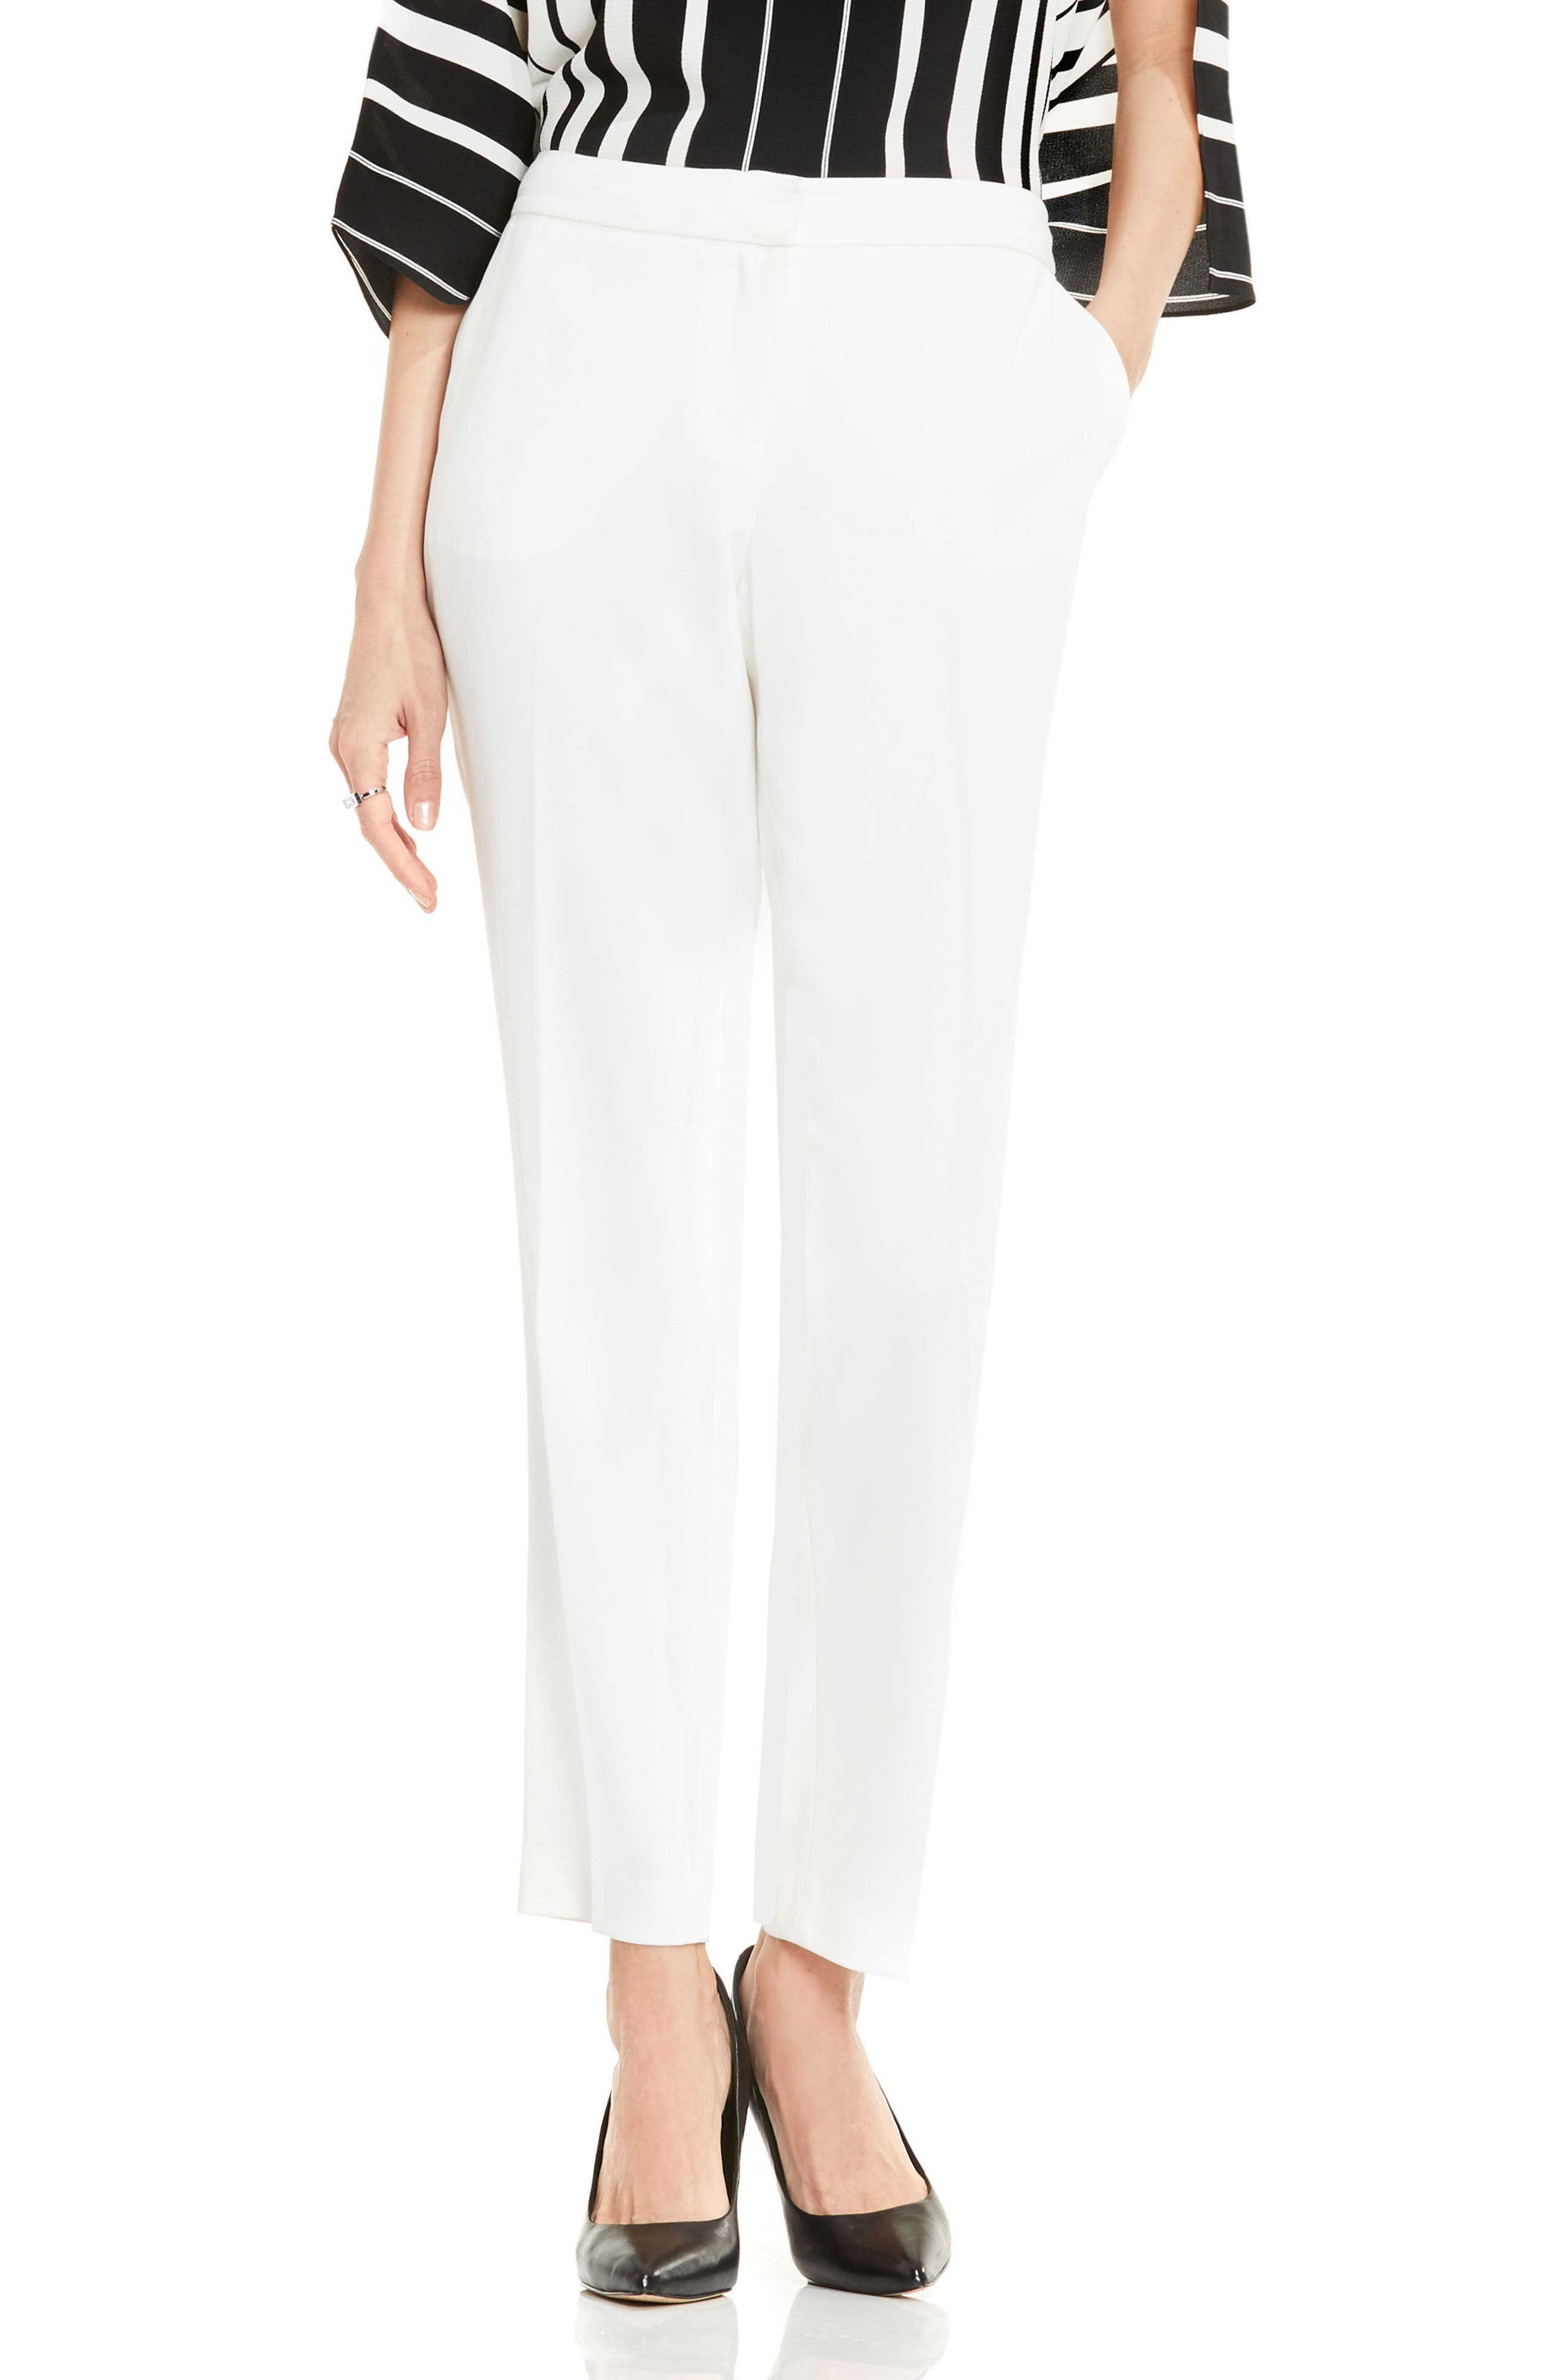 Main Image - Vince Camuto Textured Skinny Ankle Pants (Regular & Petite)